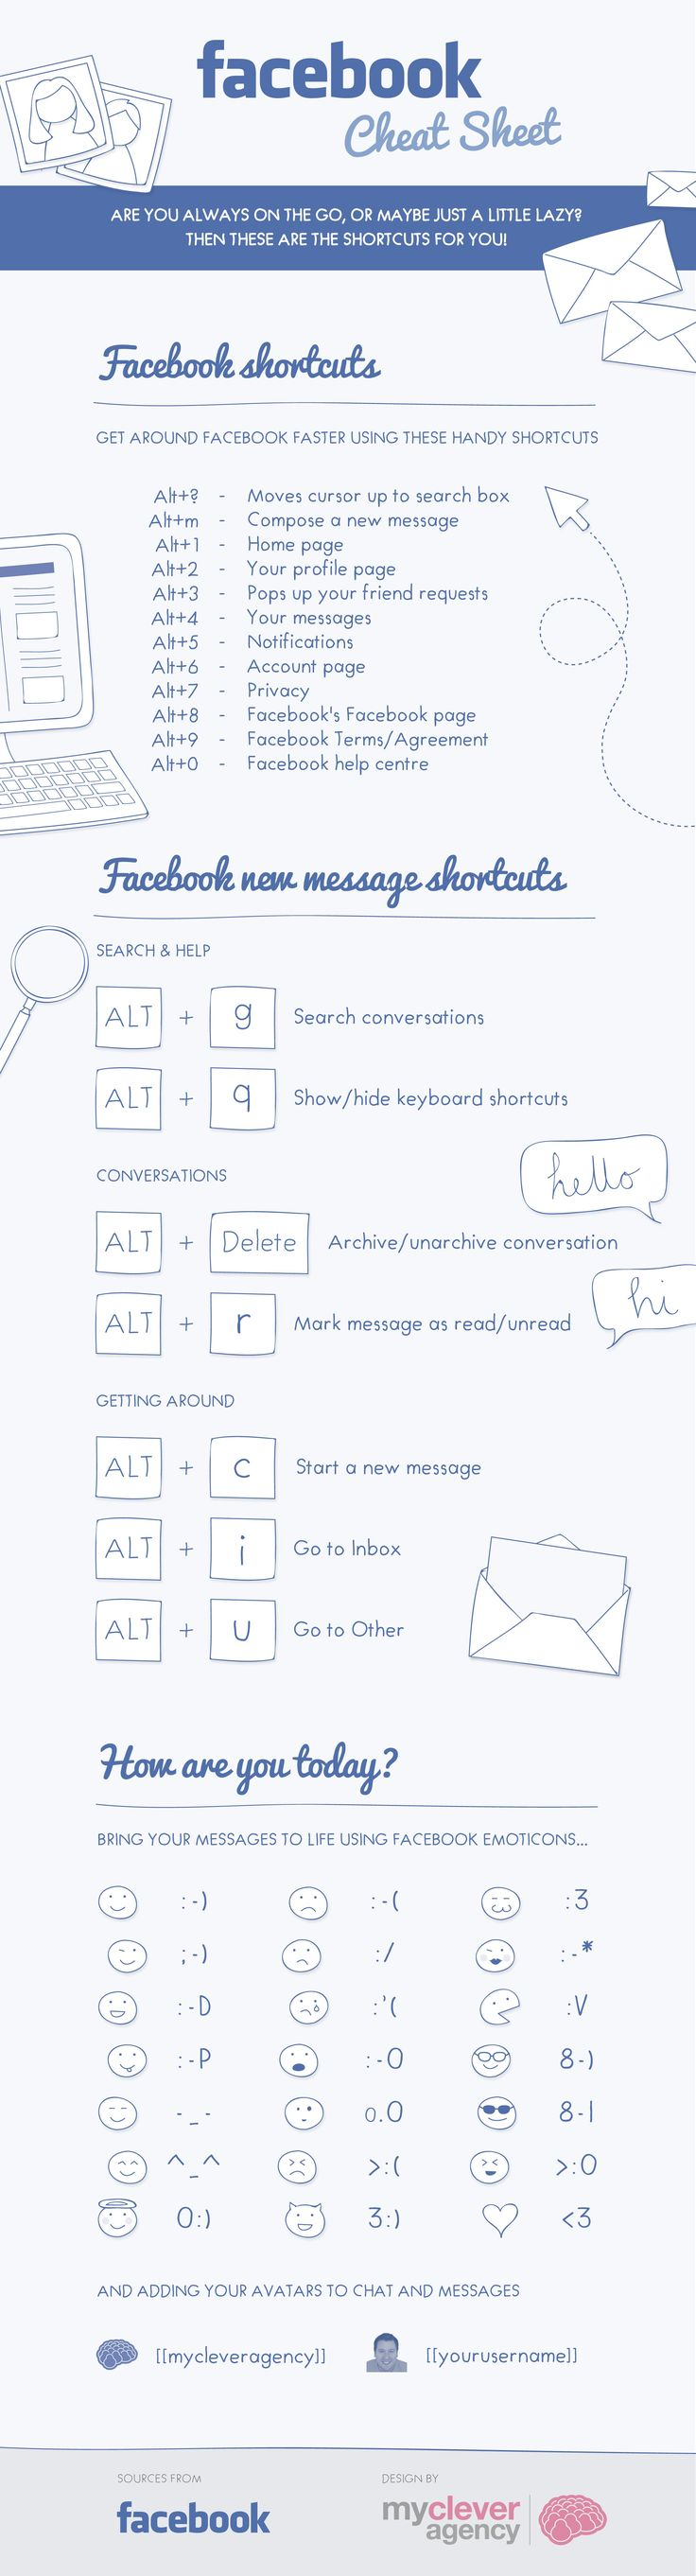 Free Worksheet Computer Lab Worksheets 17 best images about computer worksheets on pinterest save some time while wasting facebook with handy keyboard shortcuts for quickly